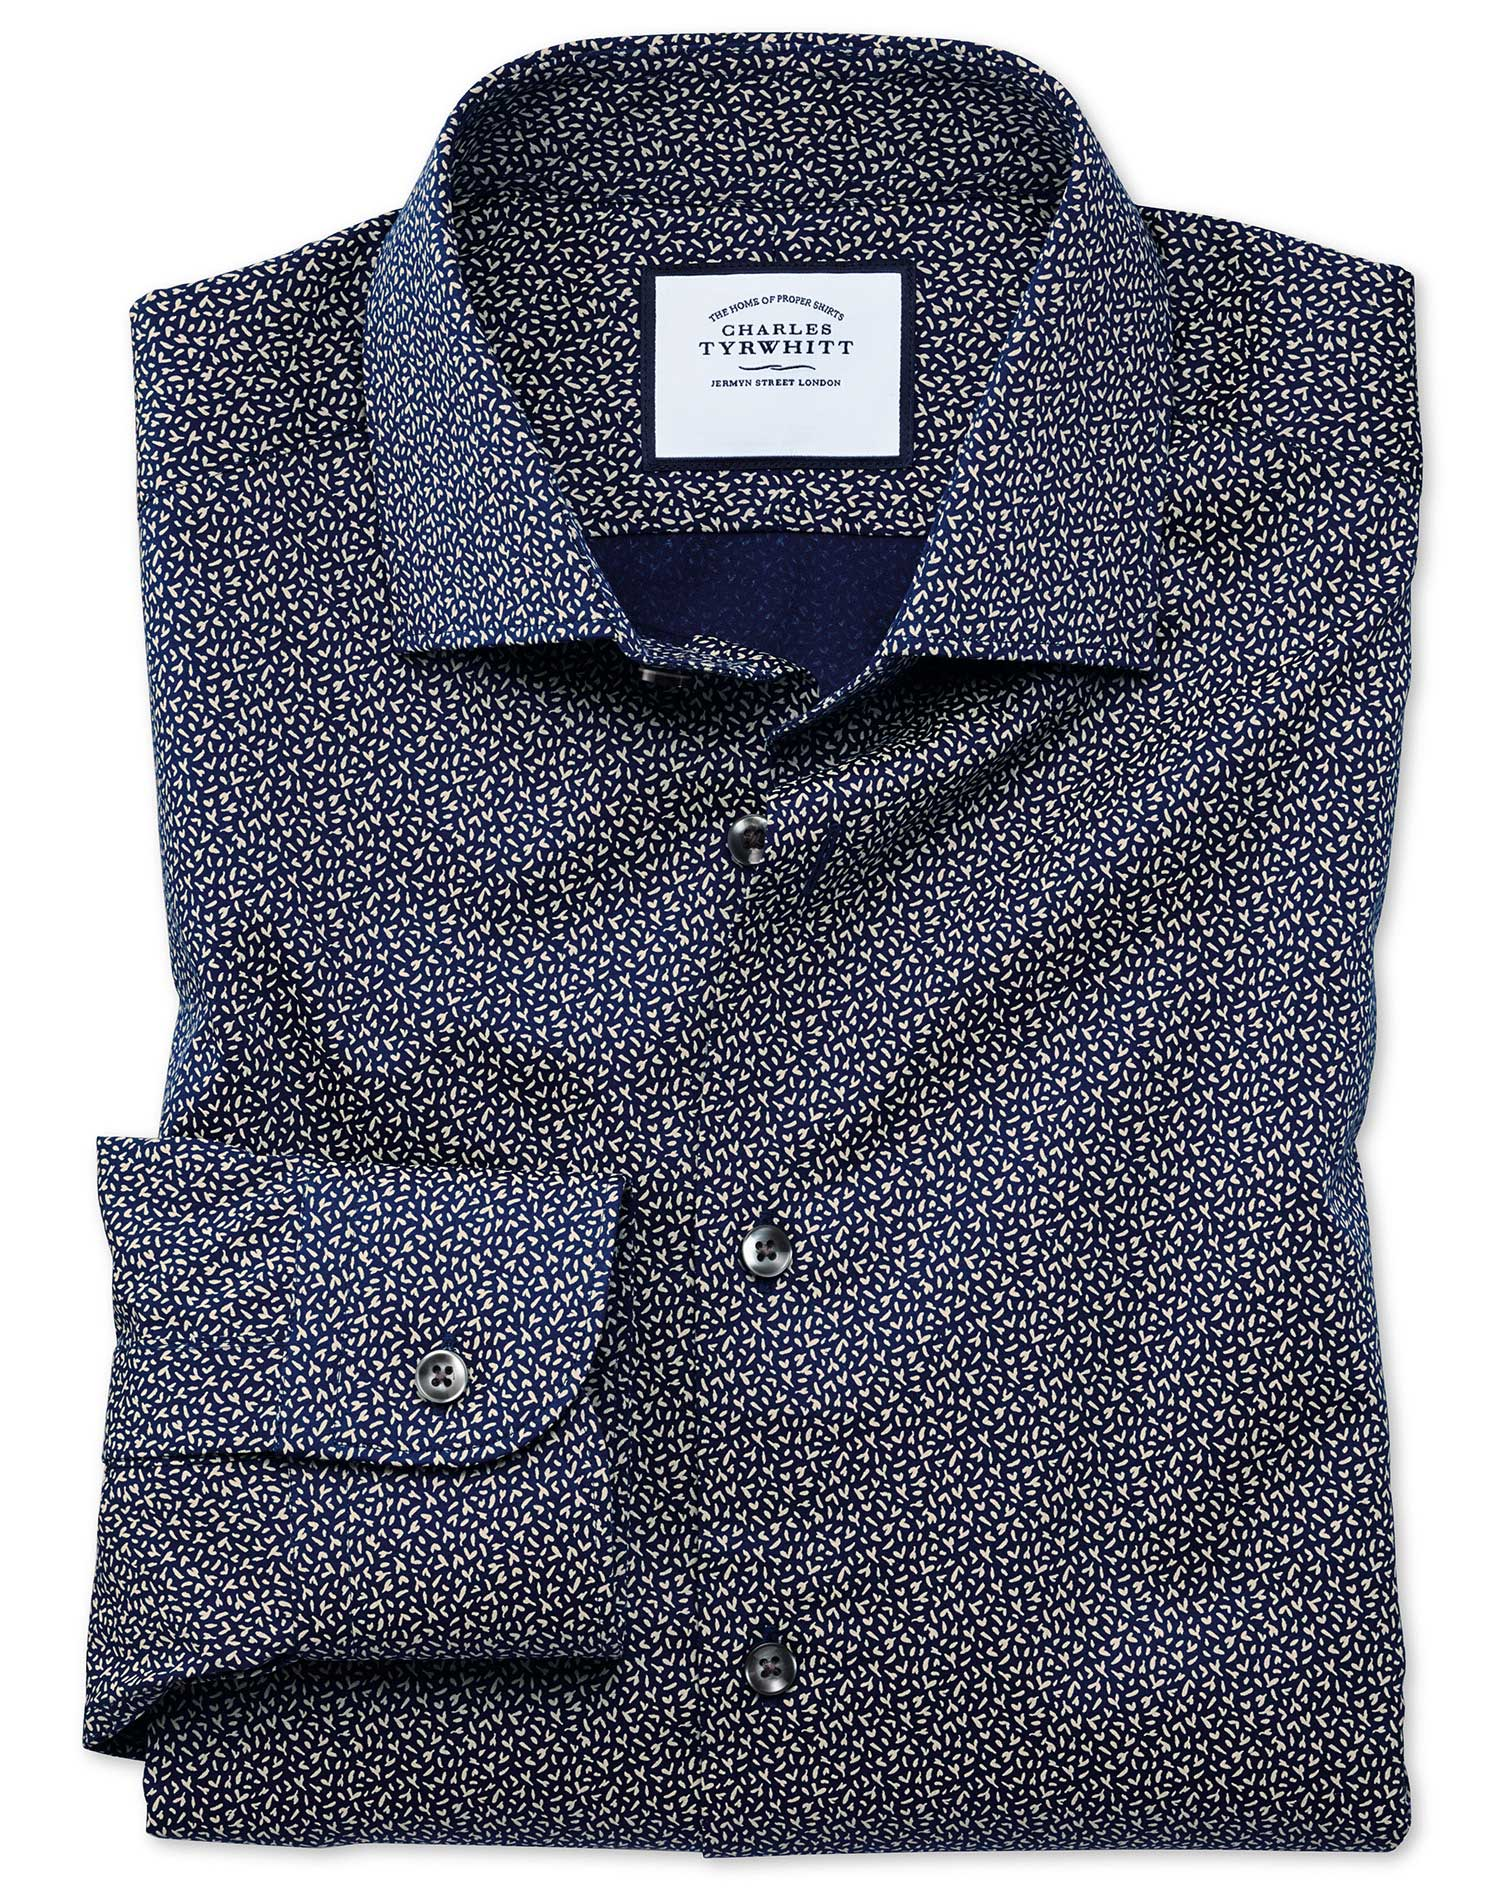 Classic Fit Business Casual Navy and White Print Cotton Formal Shirt Single Cuff Size 16.5/36 by Cha